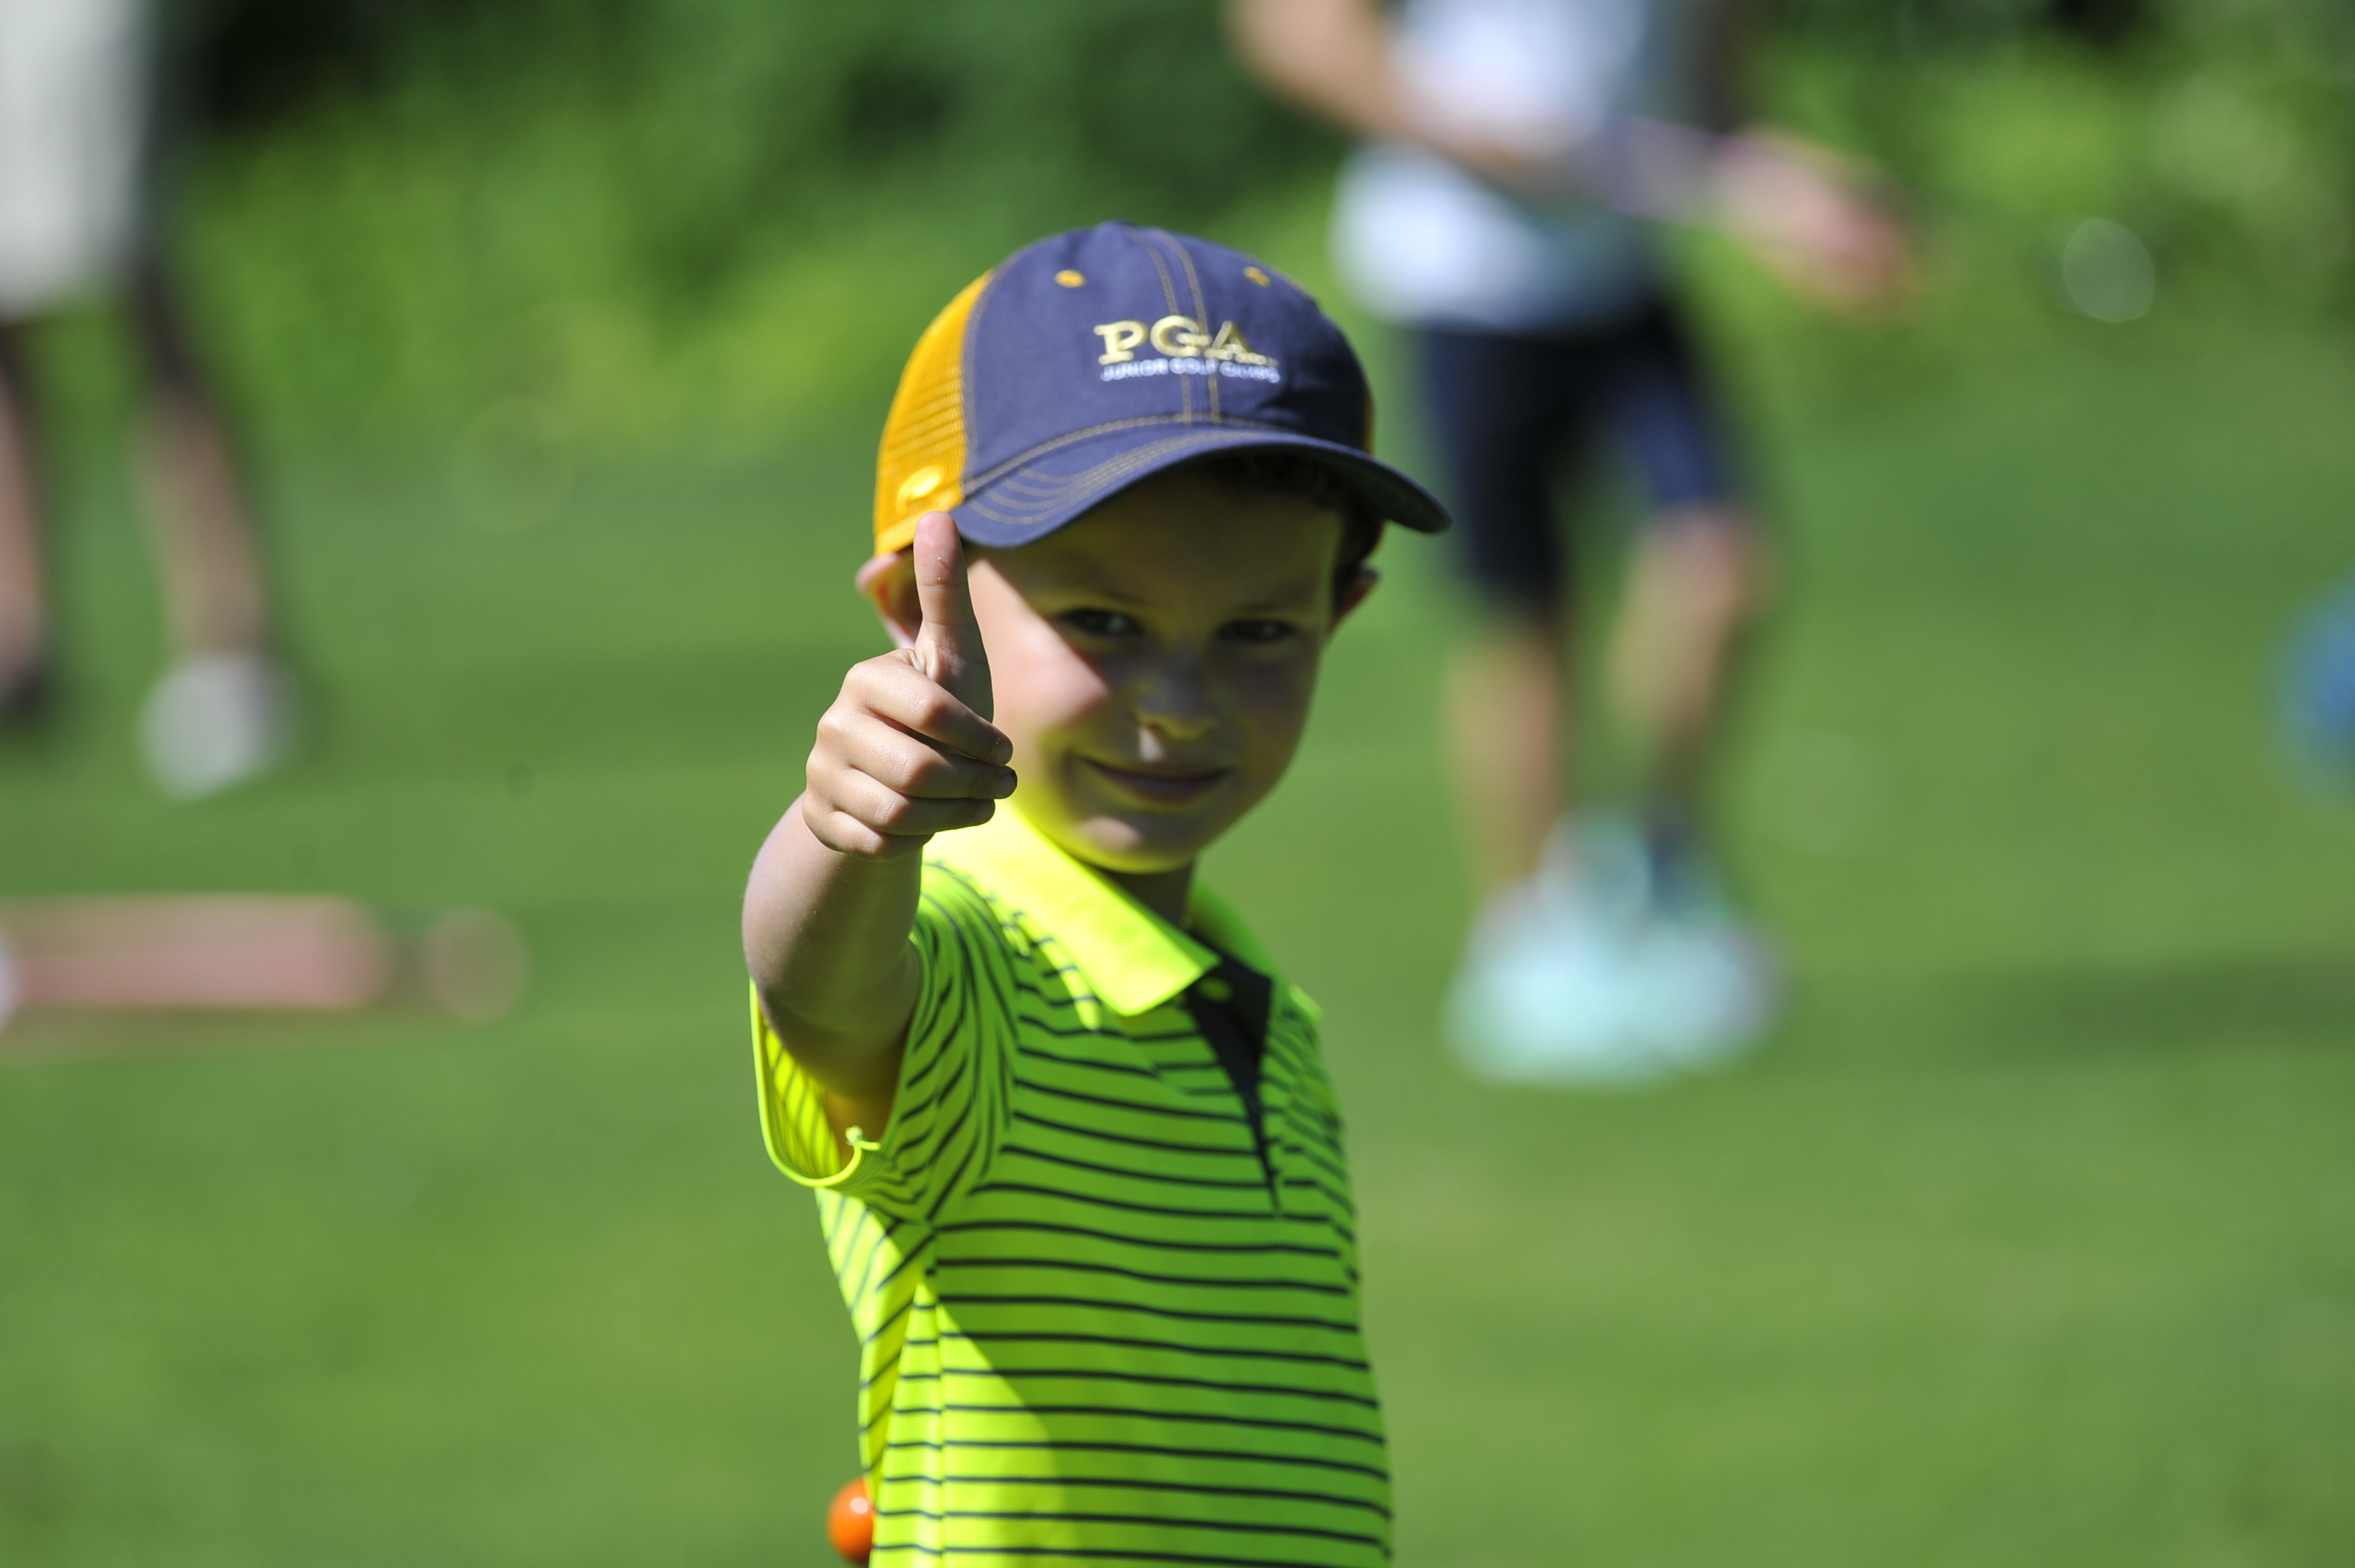 Small Business Snapshot: PGA Junior Golf Camps